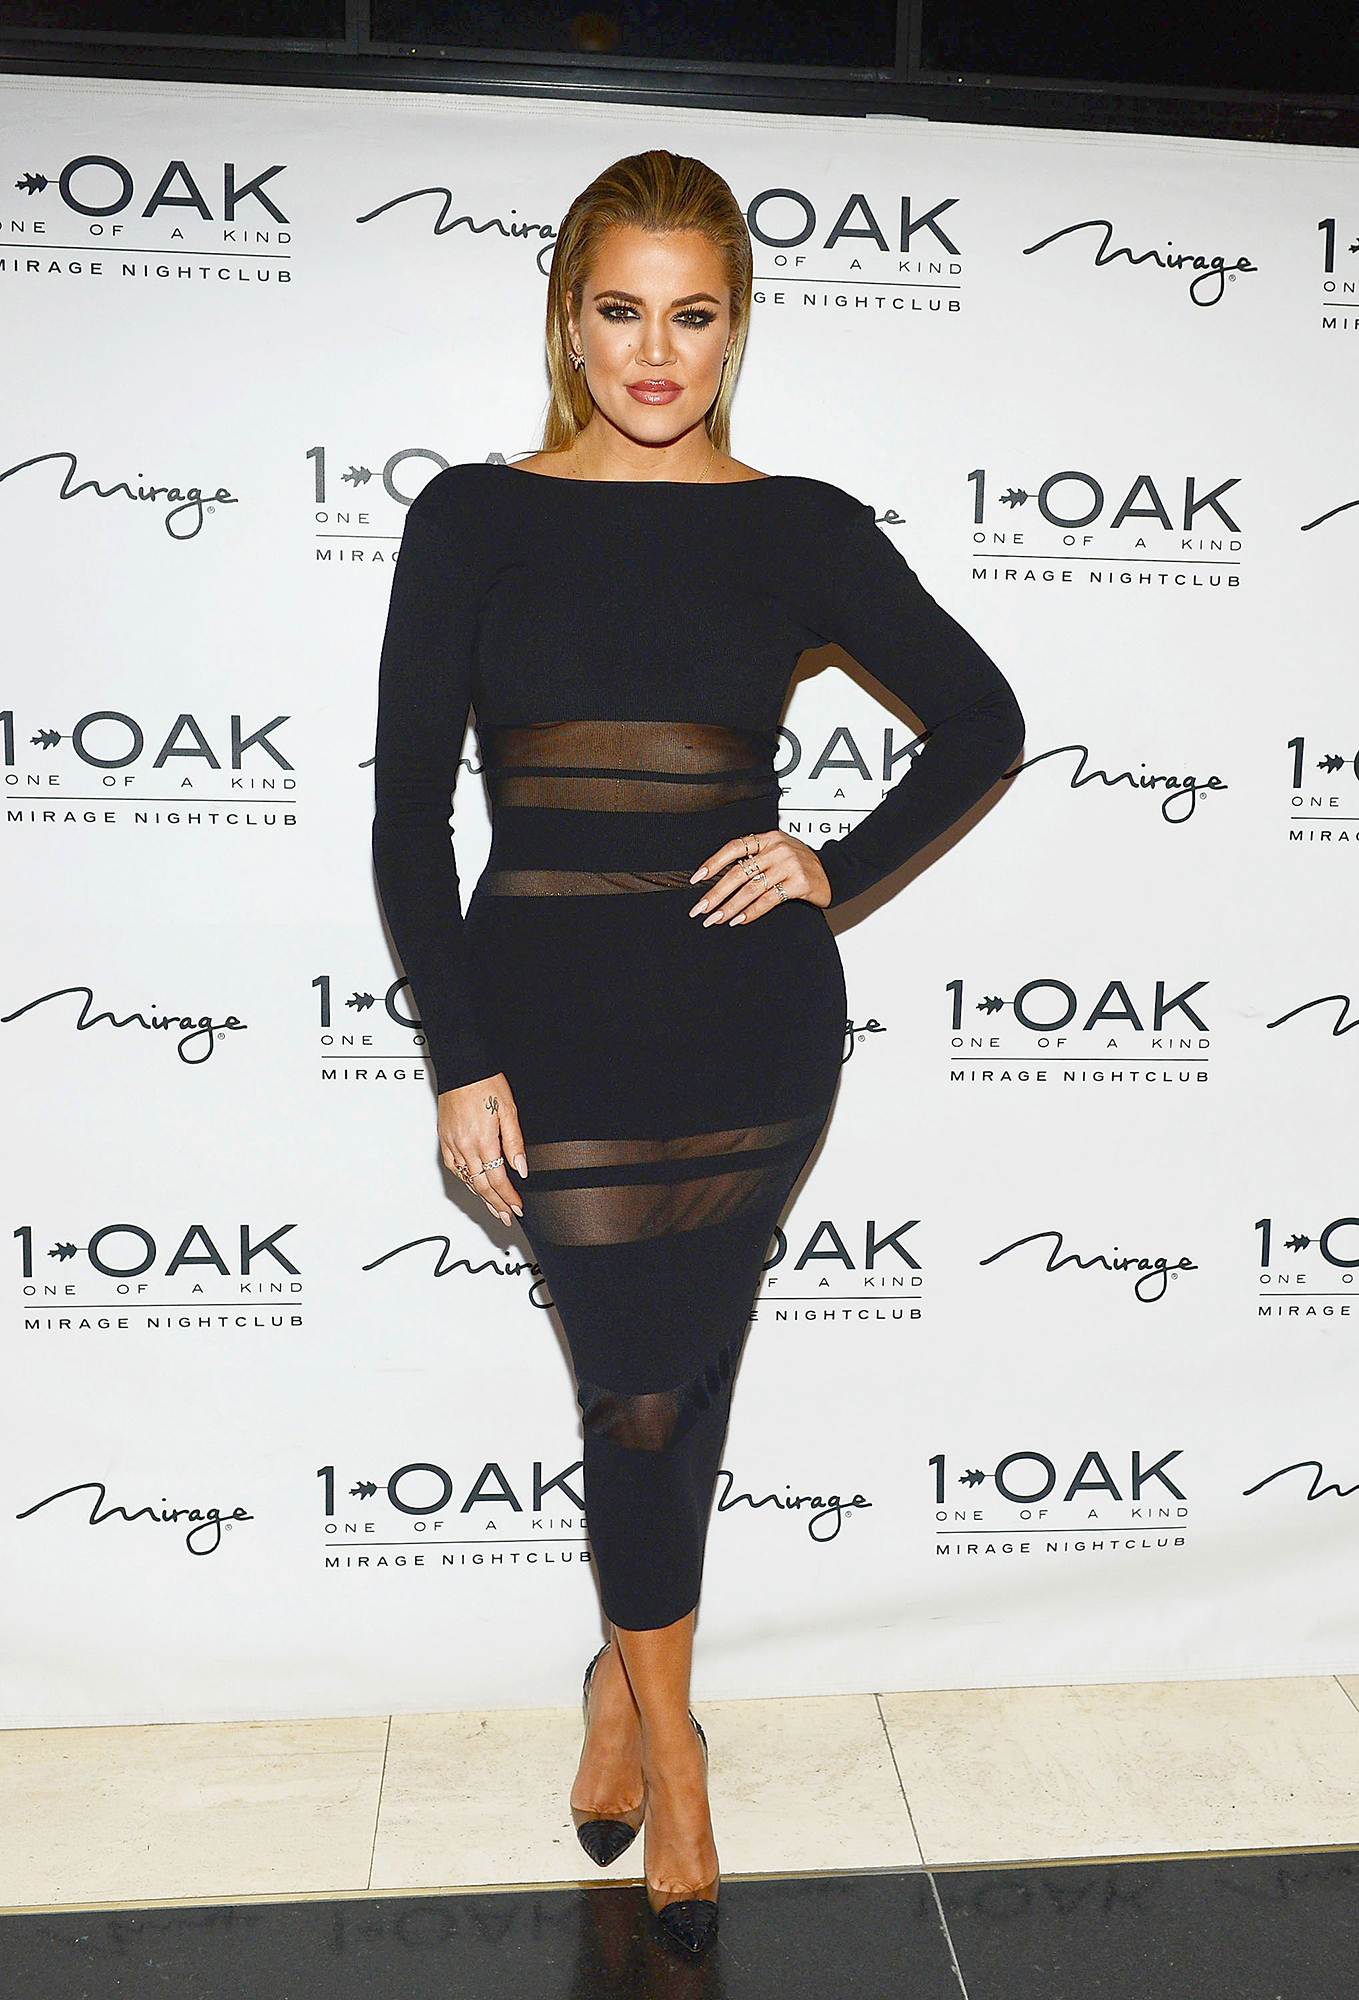 Khloe Kardashian - The Strong Looks Better Naked author flaunted her toned abs in a sexy black minidress with sheer paneling over her midriff during a May 22, 2015, appearance at 1 Oak nightclub in Las Vegas.